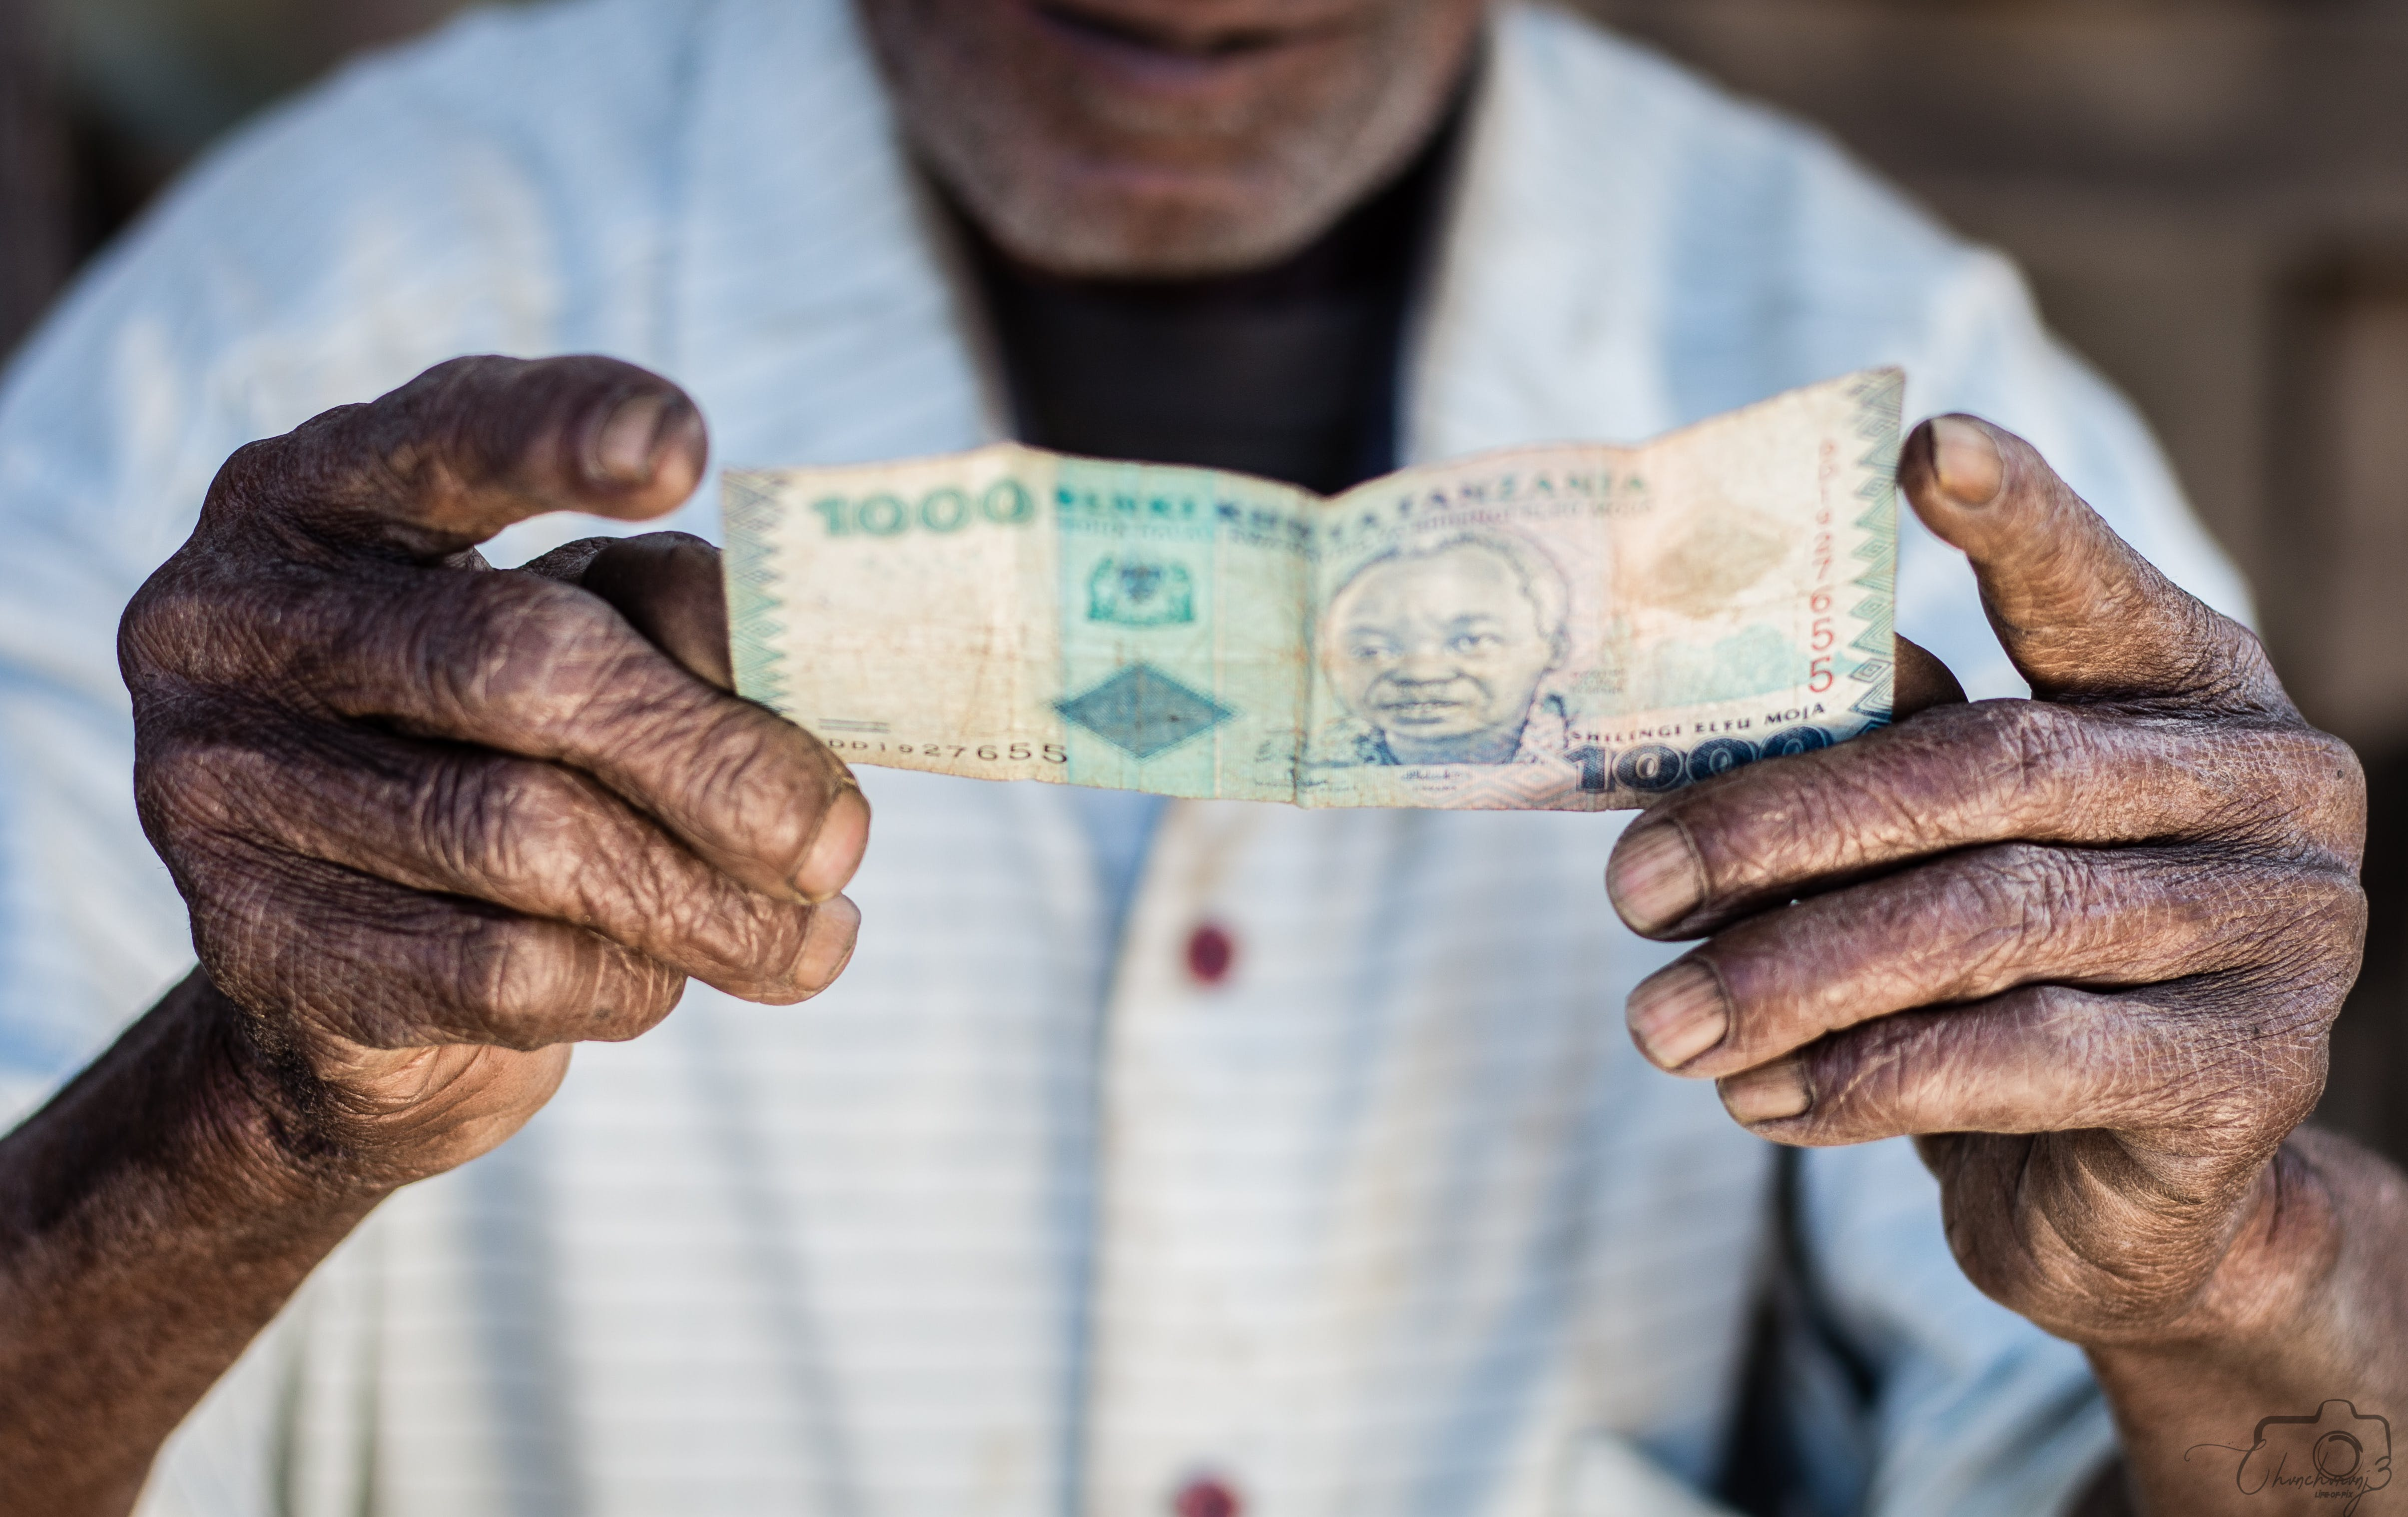 Close-Up Photo Of Person Holding Banknote